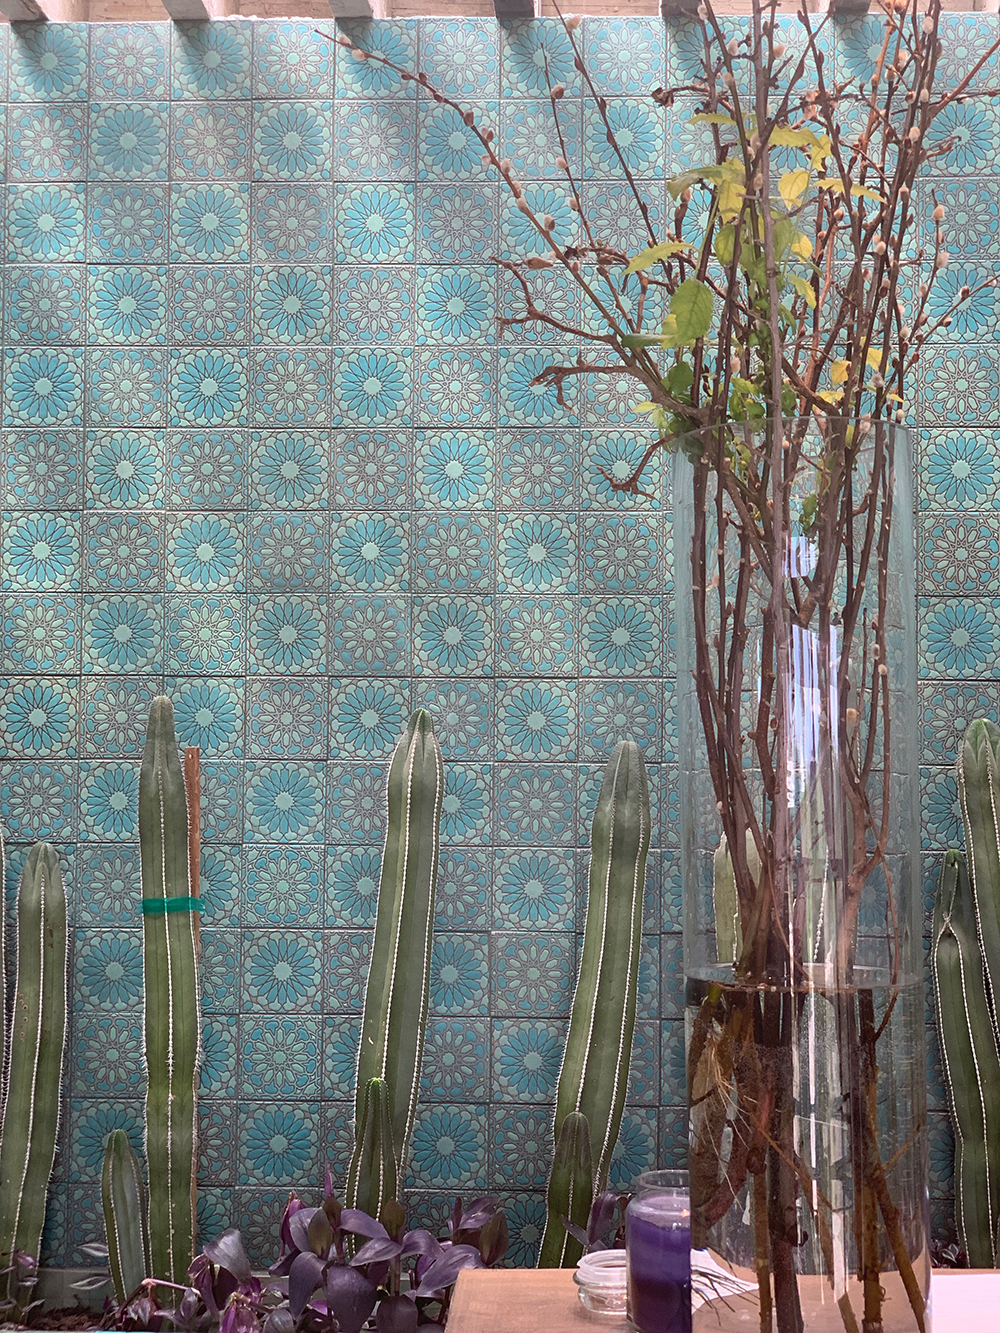 The beautiful tile wall behind the check-in desk.